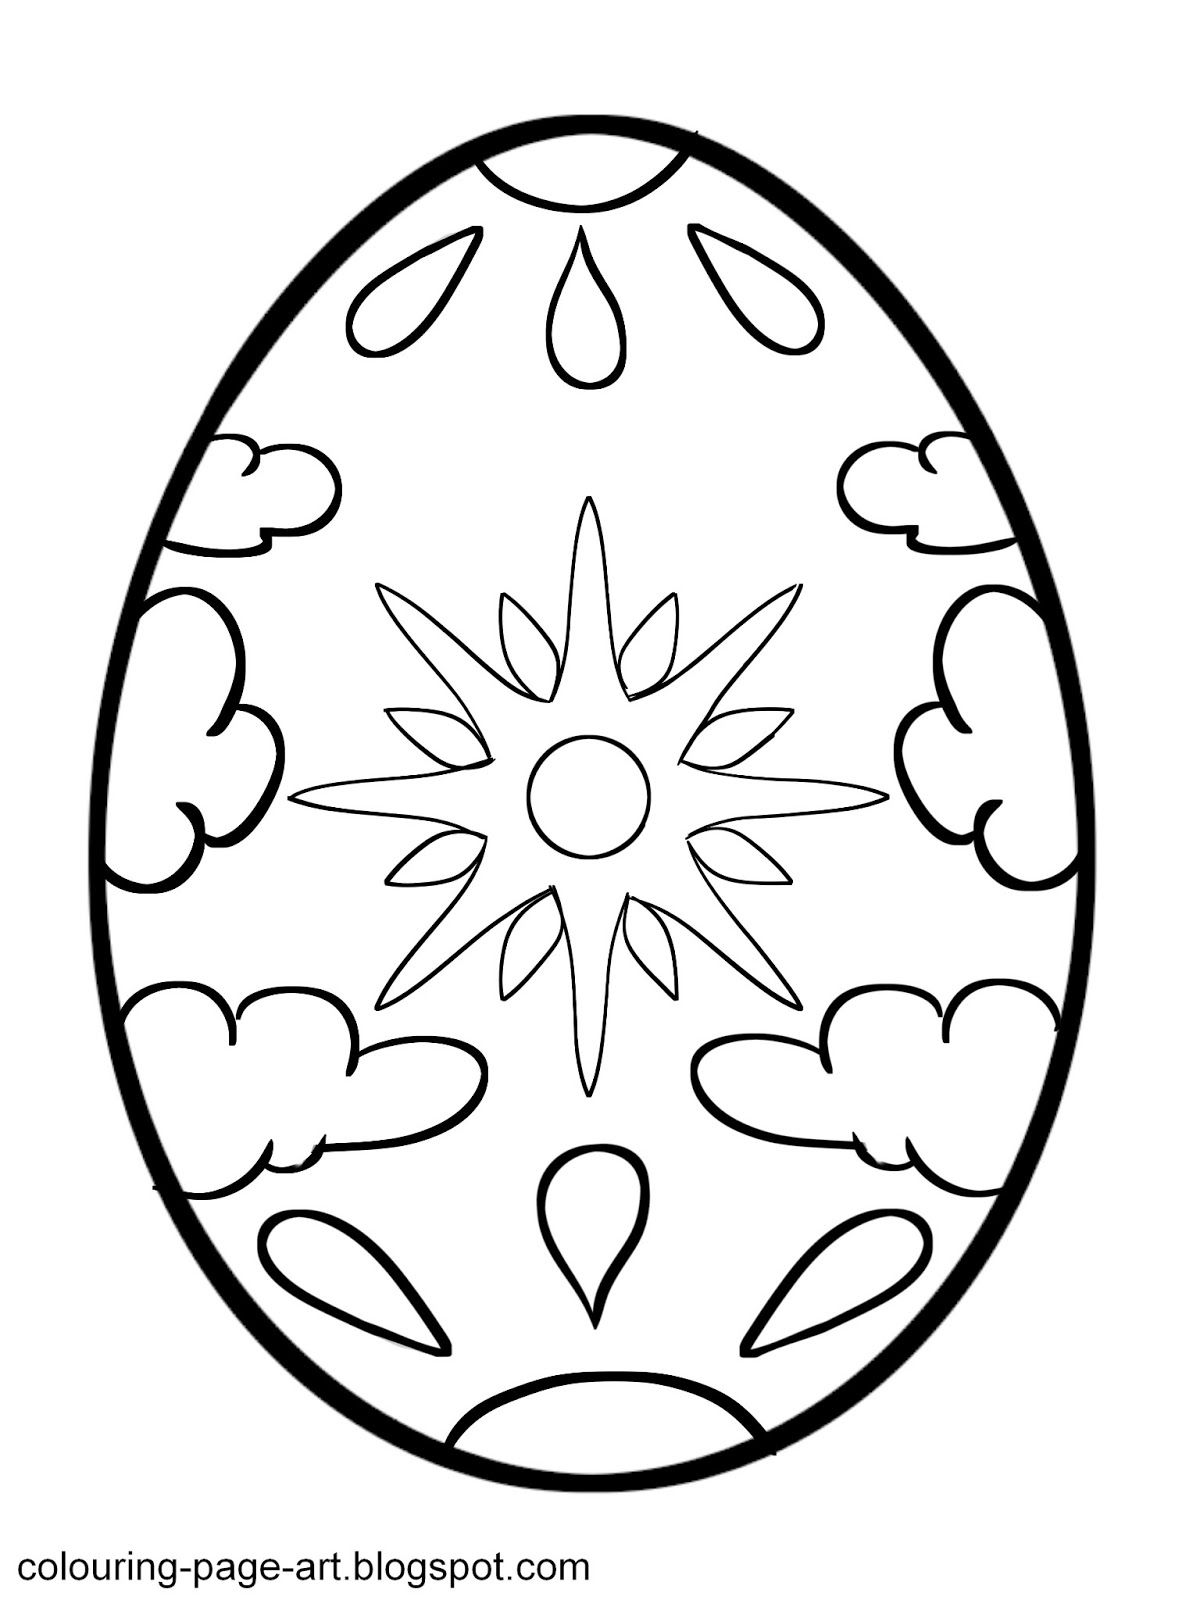 Easter Egg Printable Colouring Pages Easter Egg Printable Colouring Pages Printable Coloring Pages